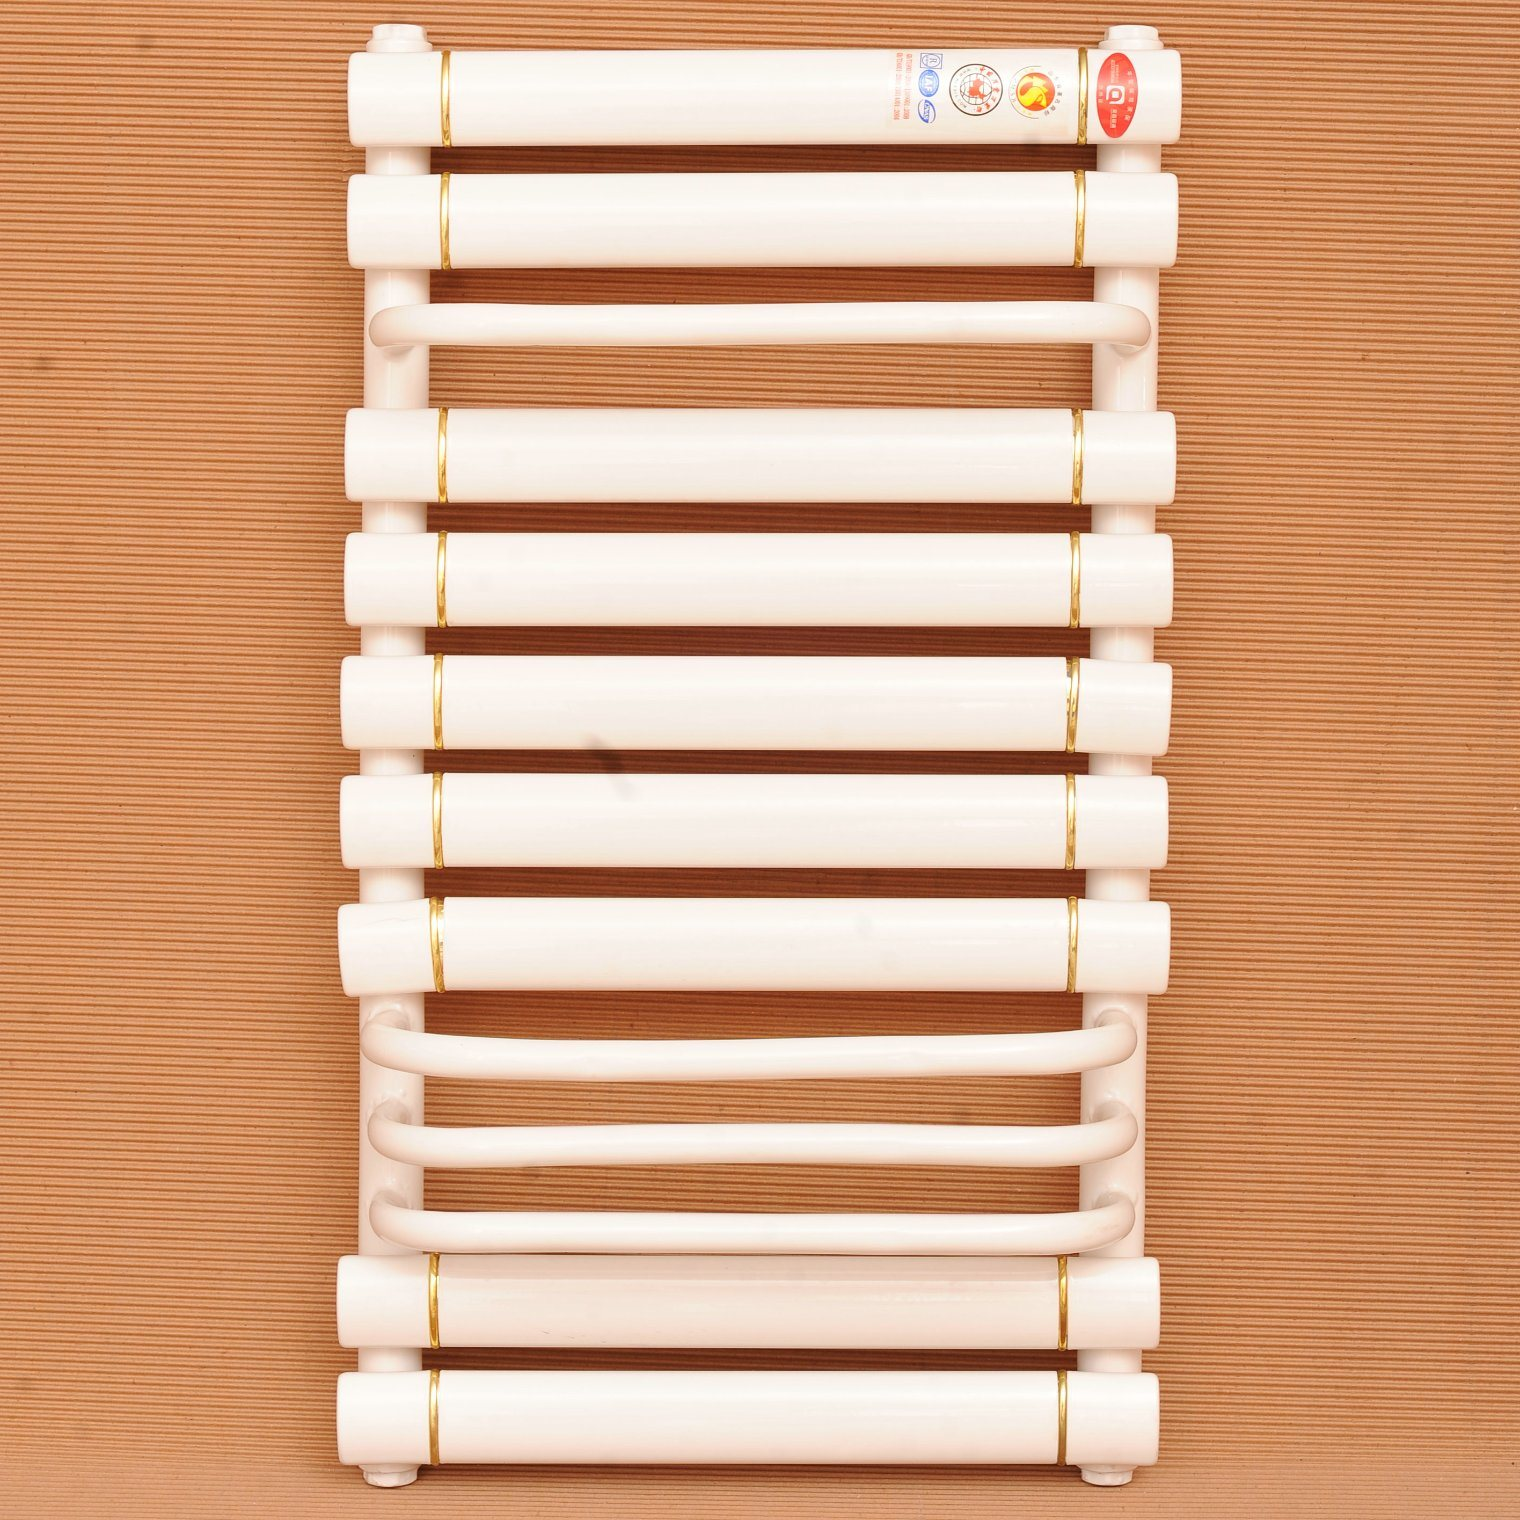 Copper Aluminum Bathroom Radiator/Towel Radiator for Hot Water Heating